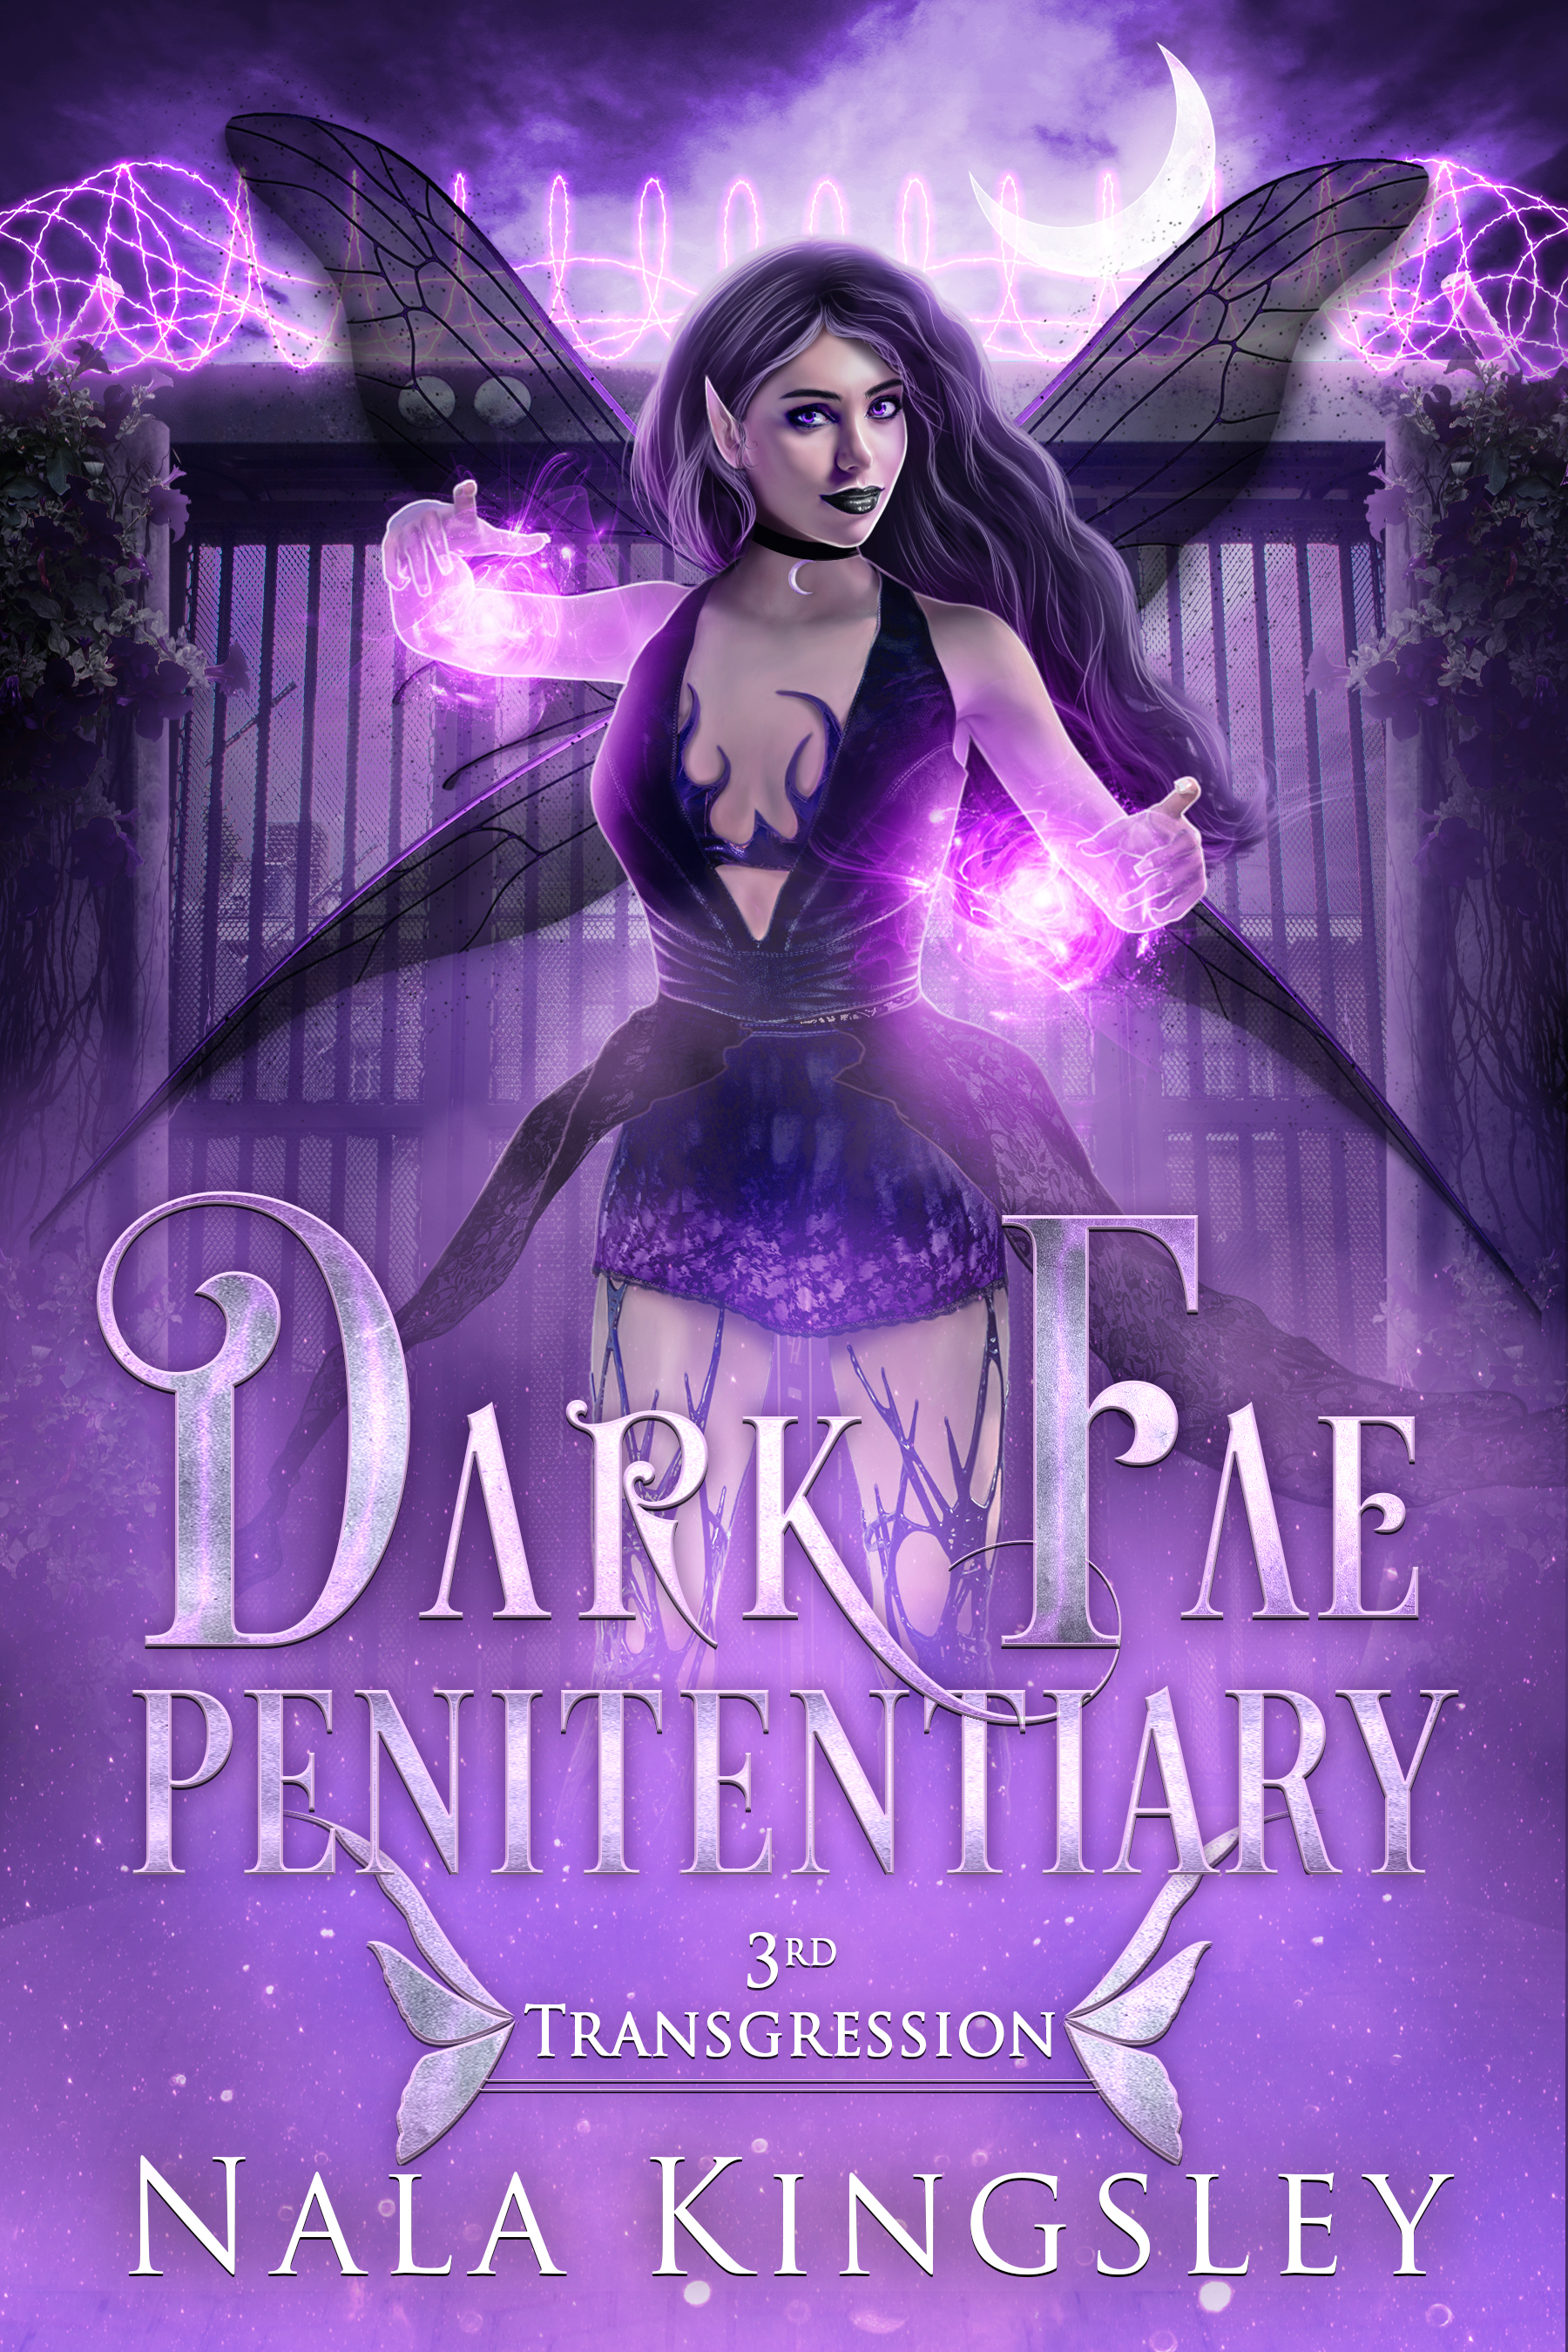 Dark Fae Penitentiary Book 3